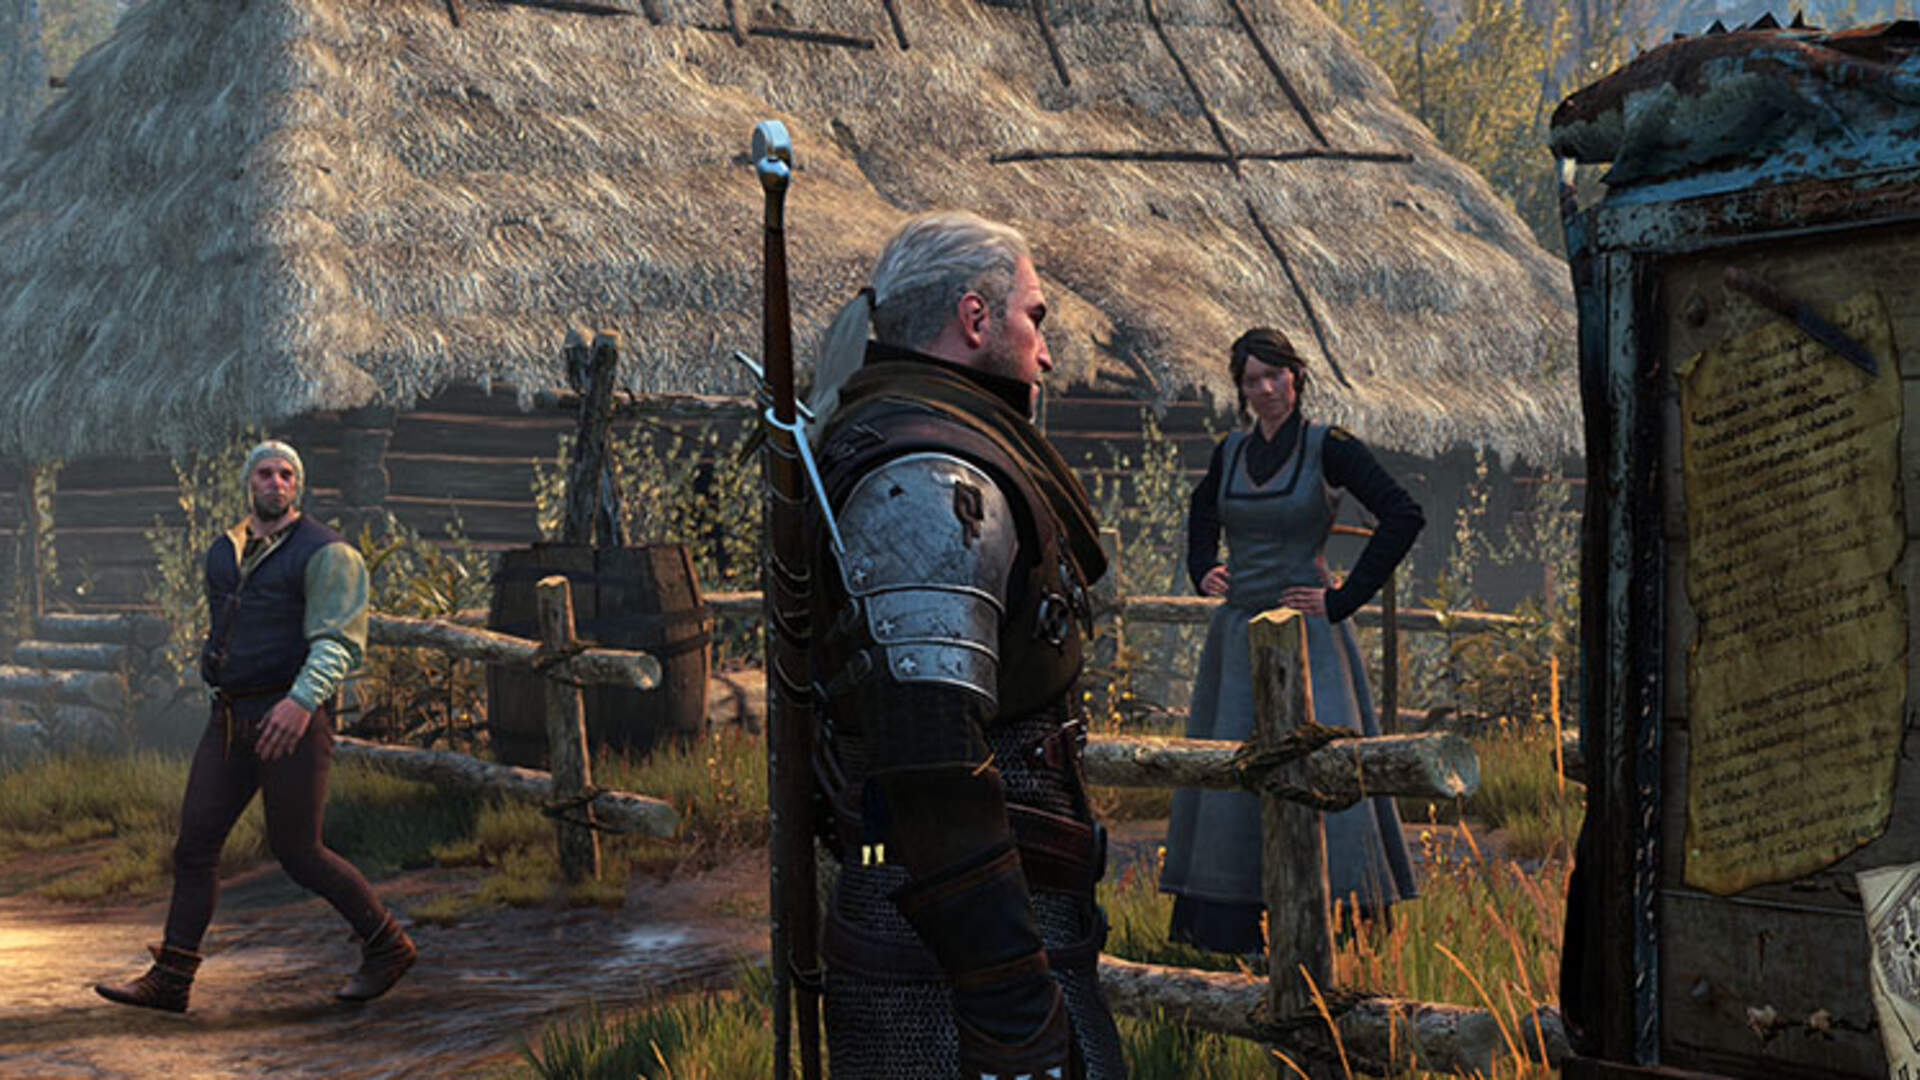 The Witcher 3: Missing in Action, On Death's Bed Walkthrough